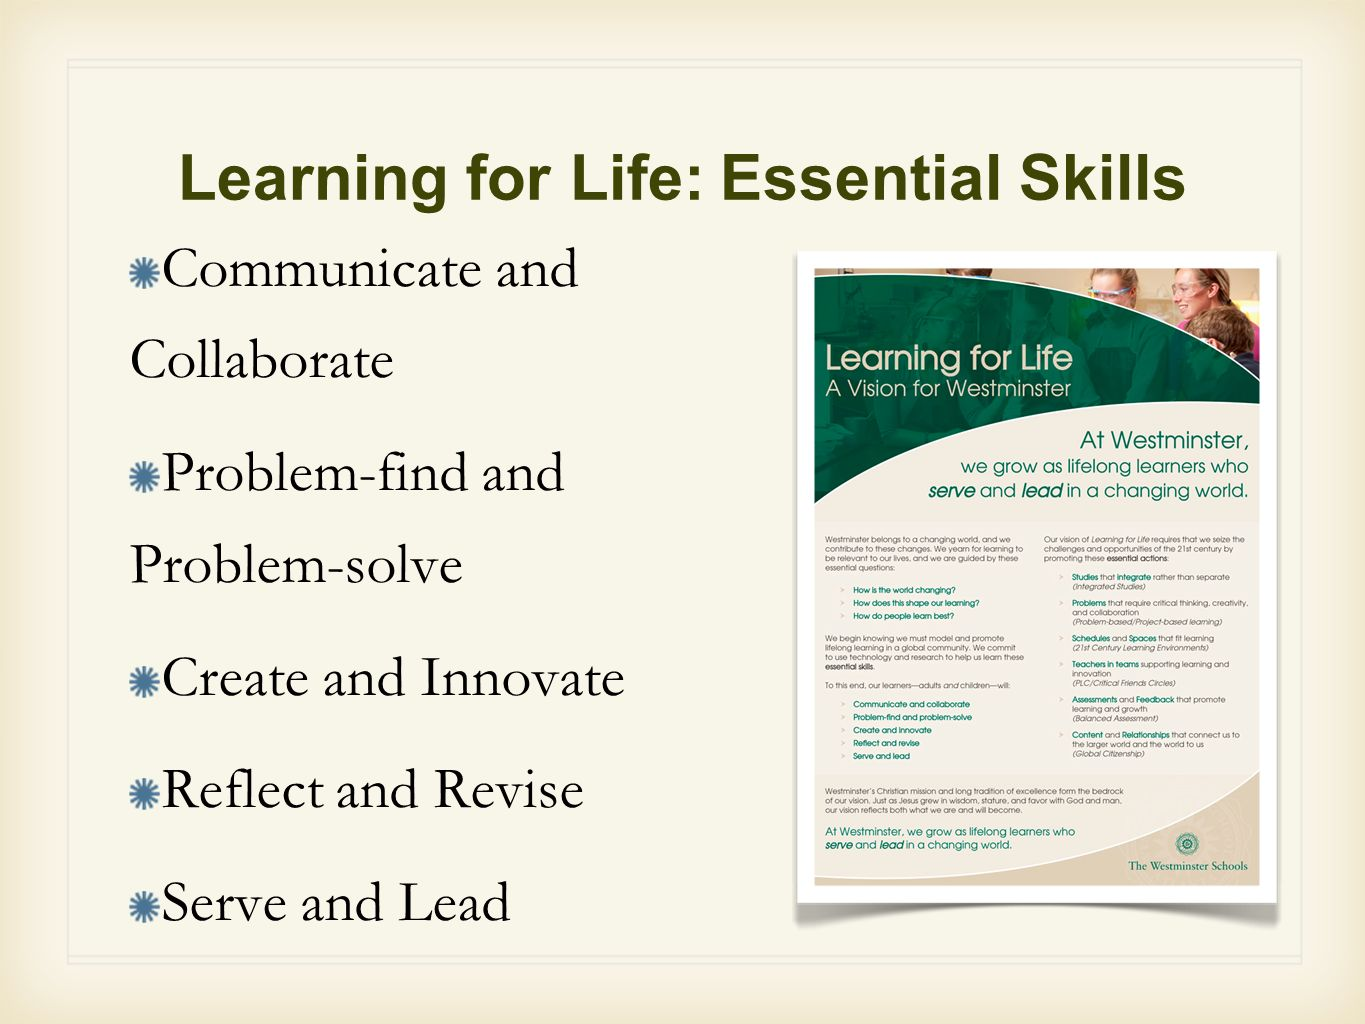 Learning for Life: Essential Skills